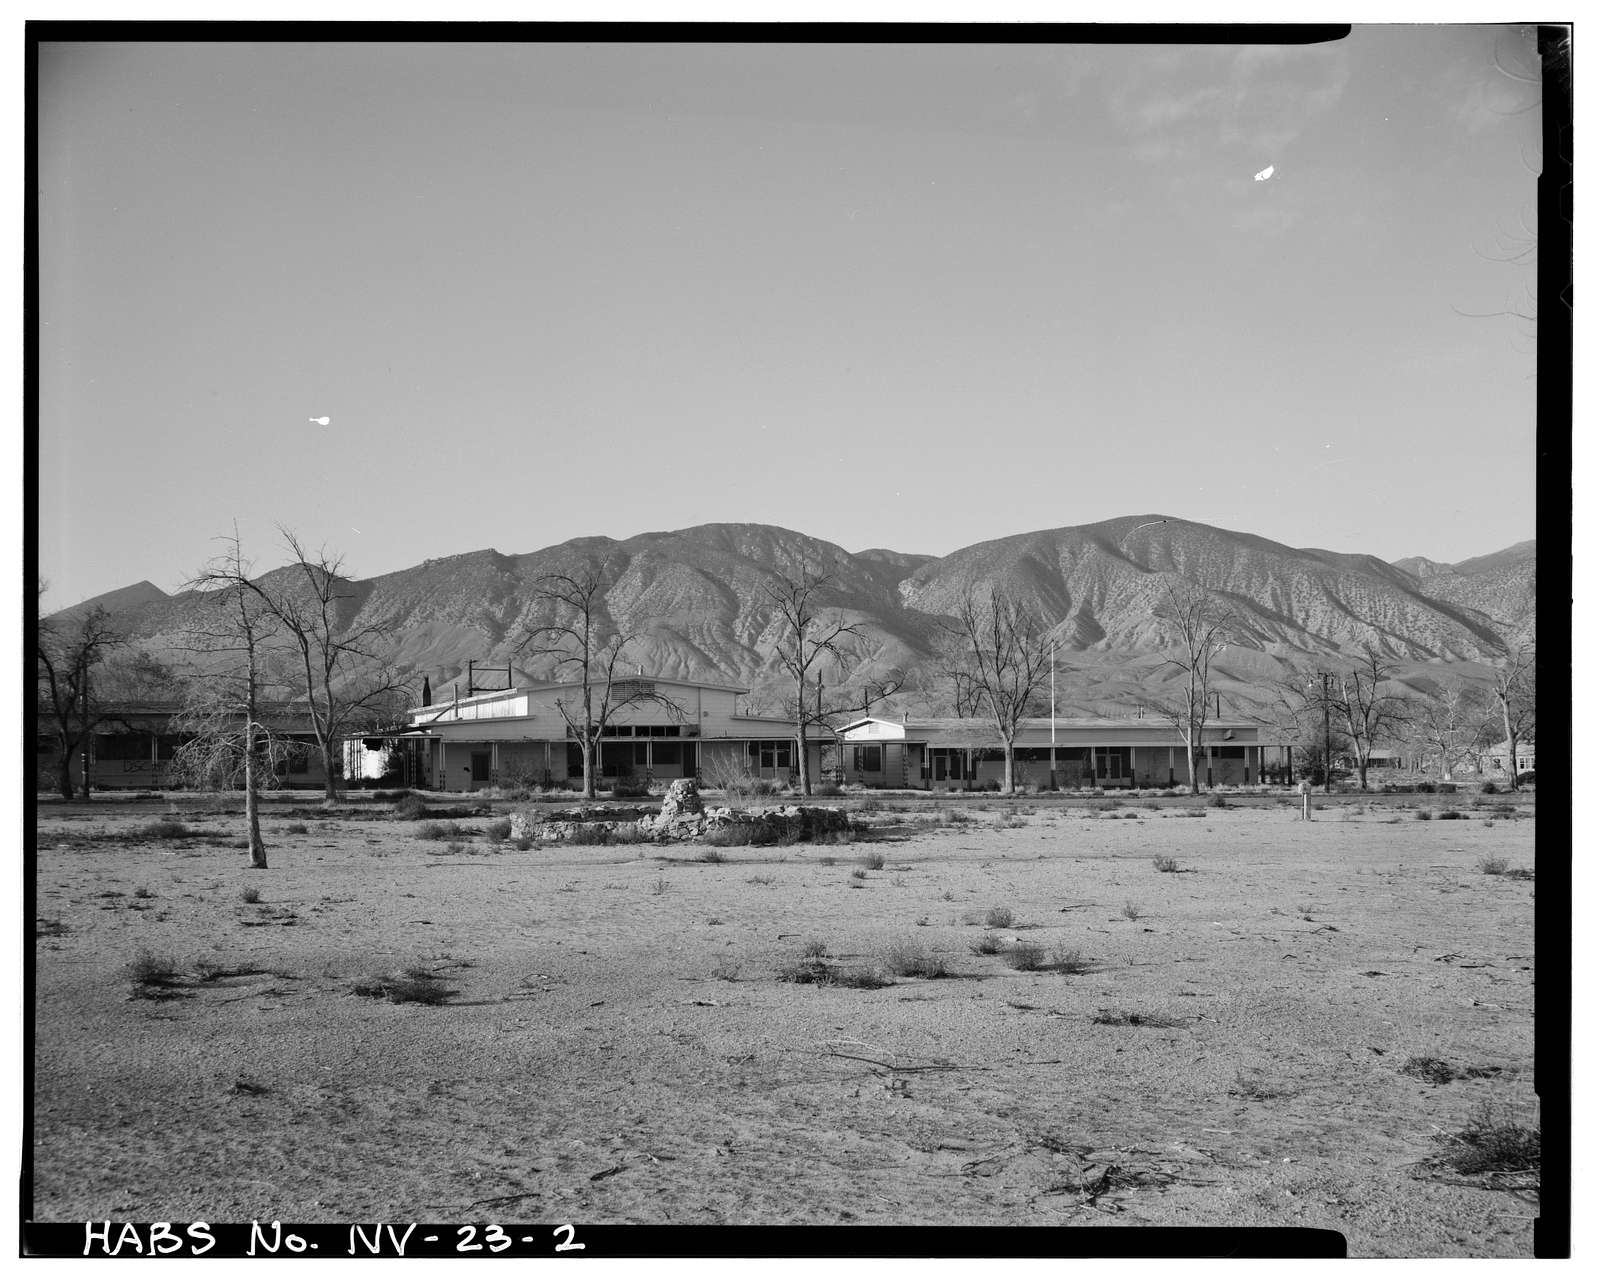 Hawthorne Naval Ammunition Depot, Babbitt Housing Area, U.S. Highway 95, Hawthorne, Mineral County, NV